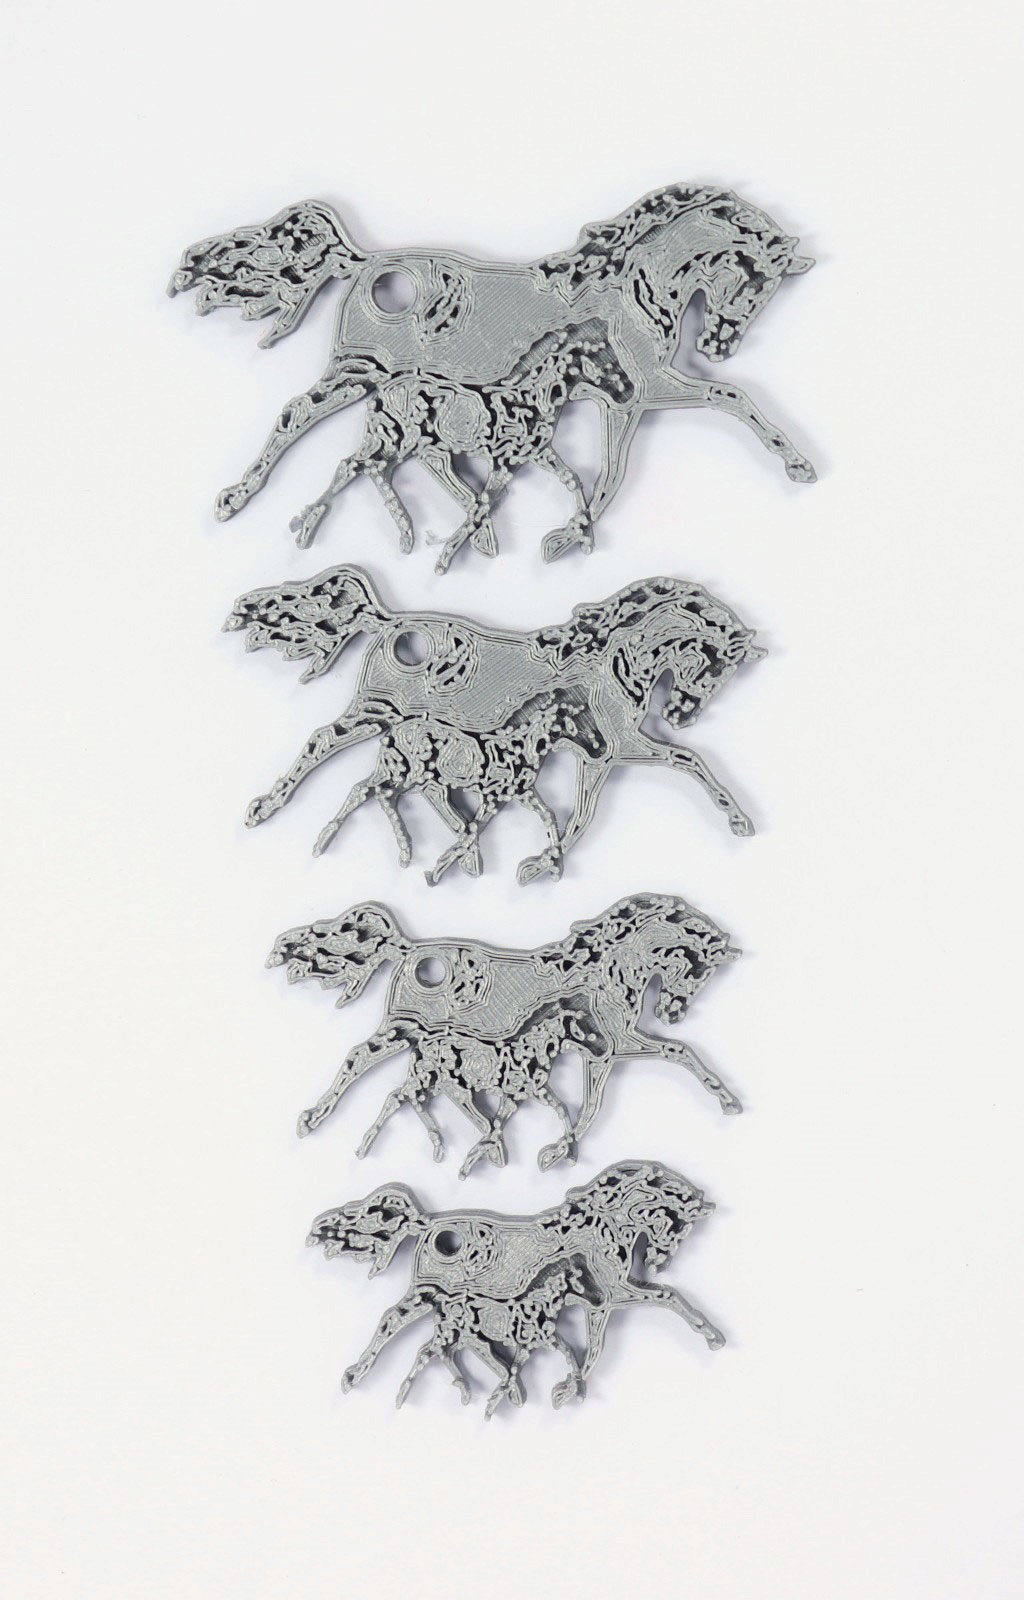 mother and foal keyring sizes